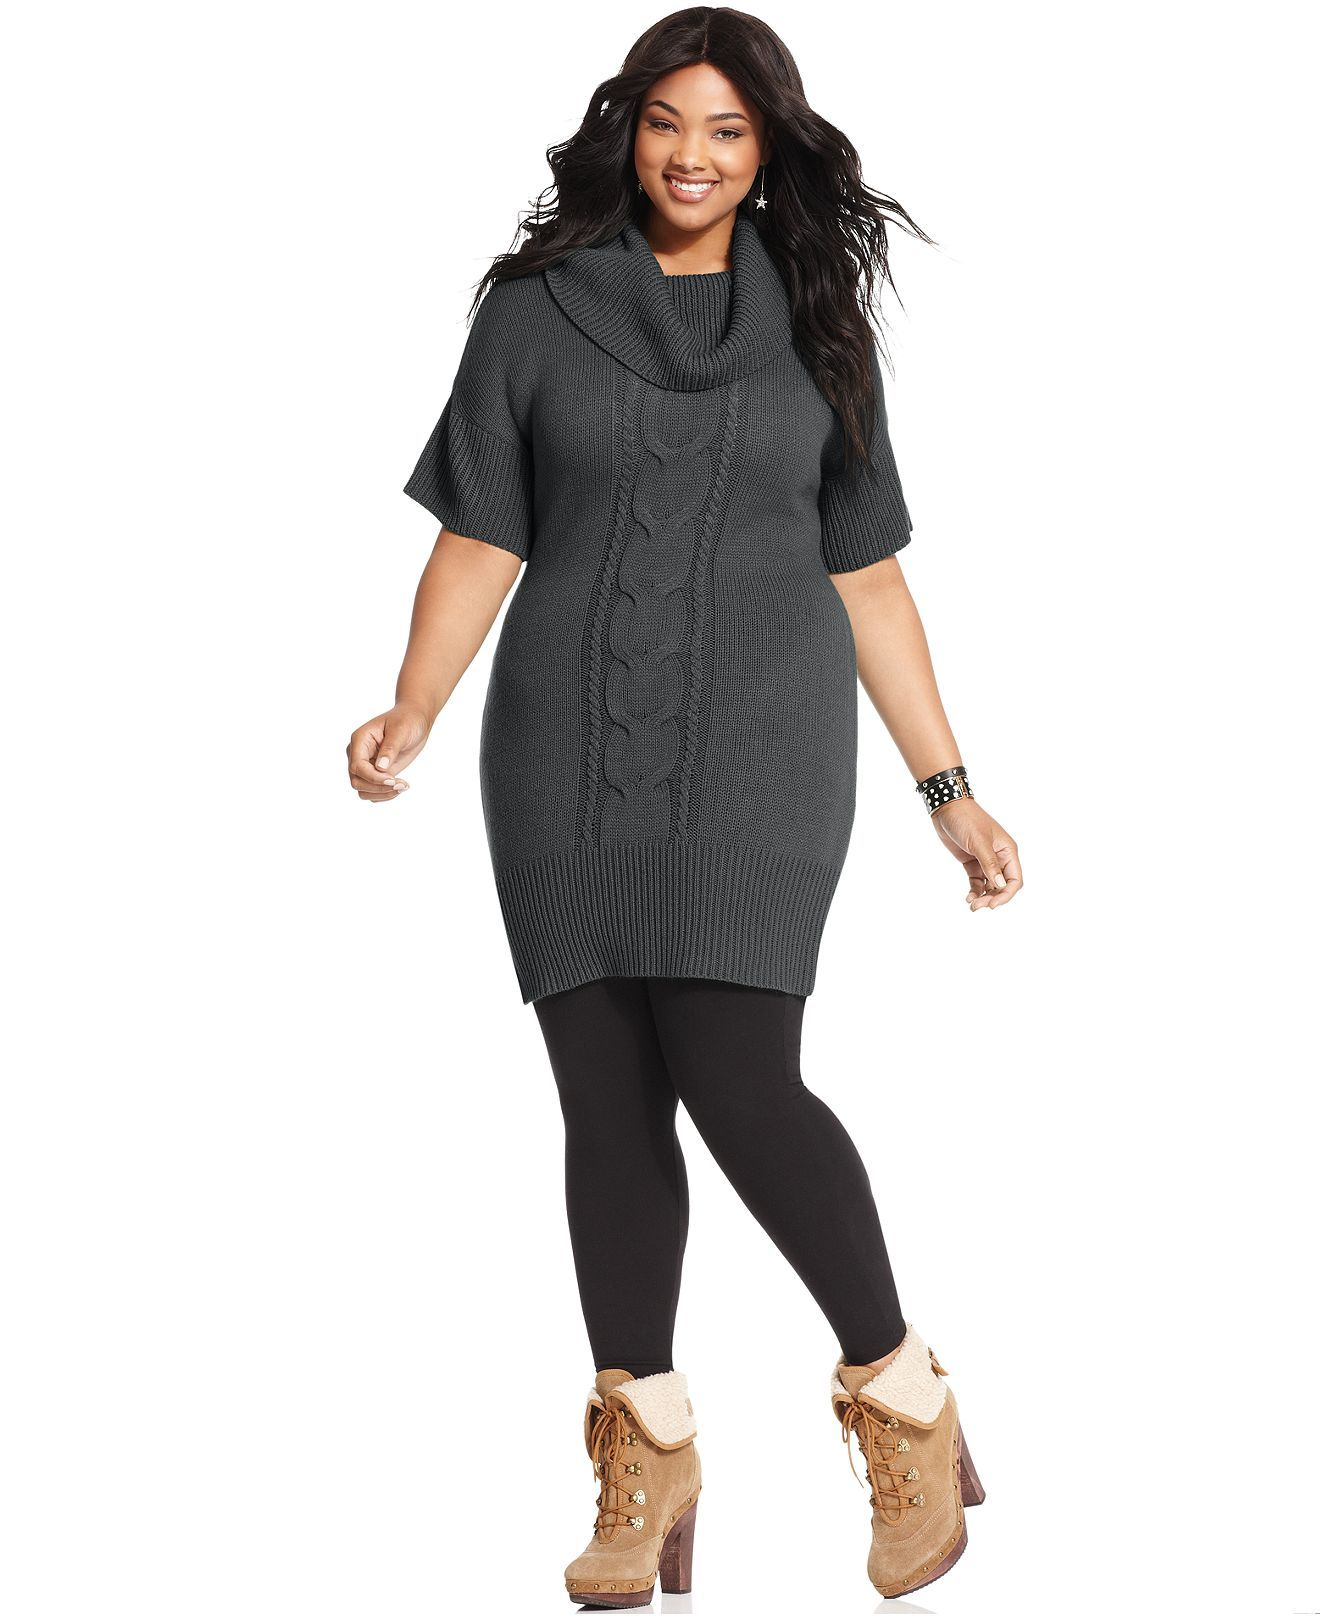 Pink Rose Plus Size Dress, Short-Sleeve Cable Sweater - Plus Size ...